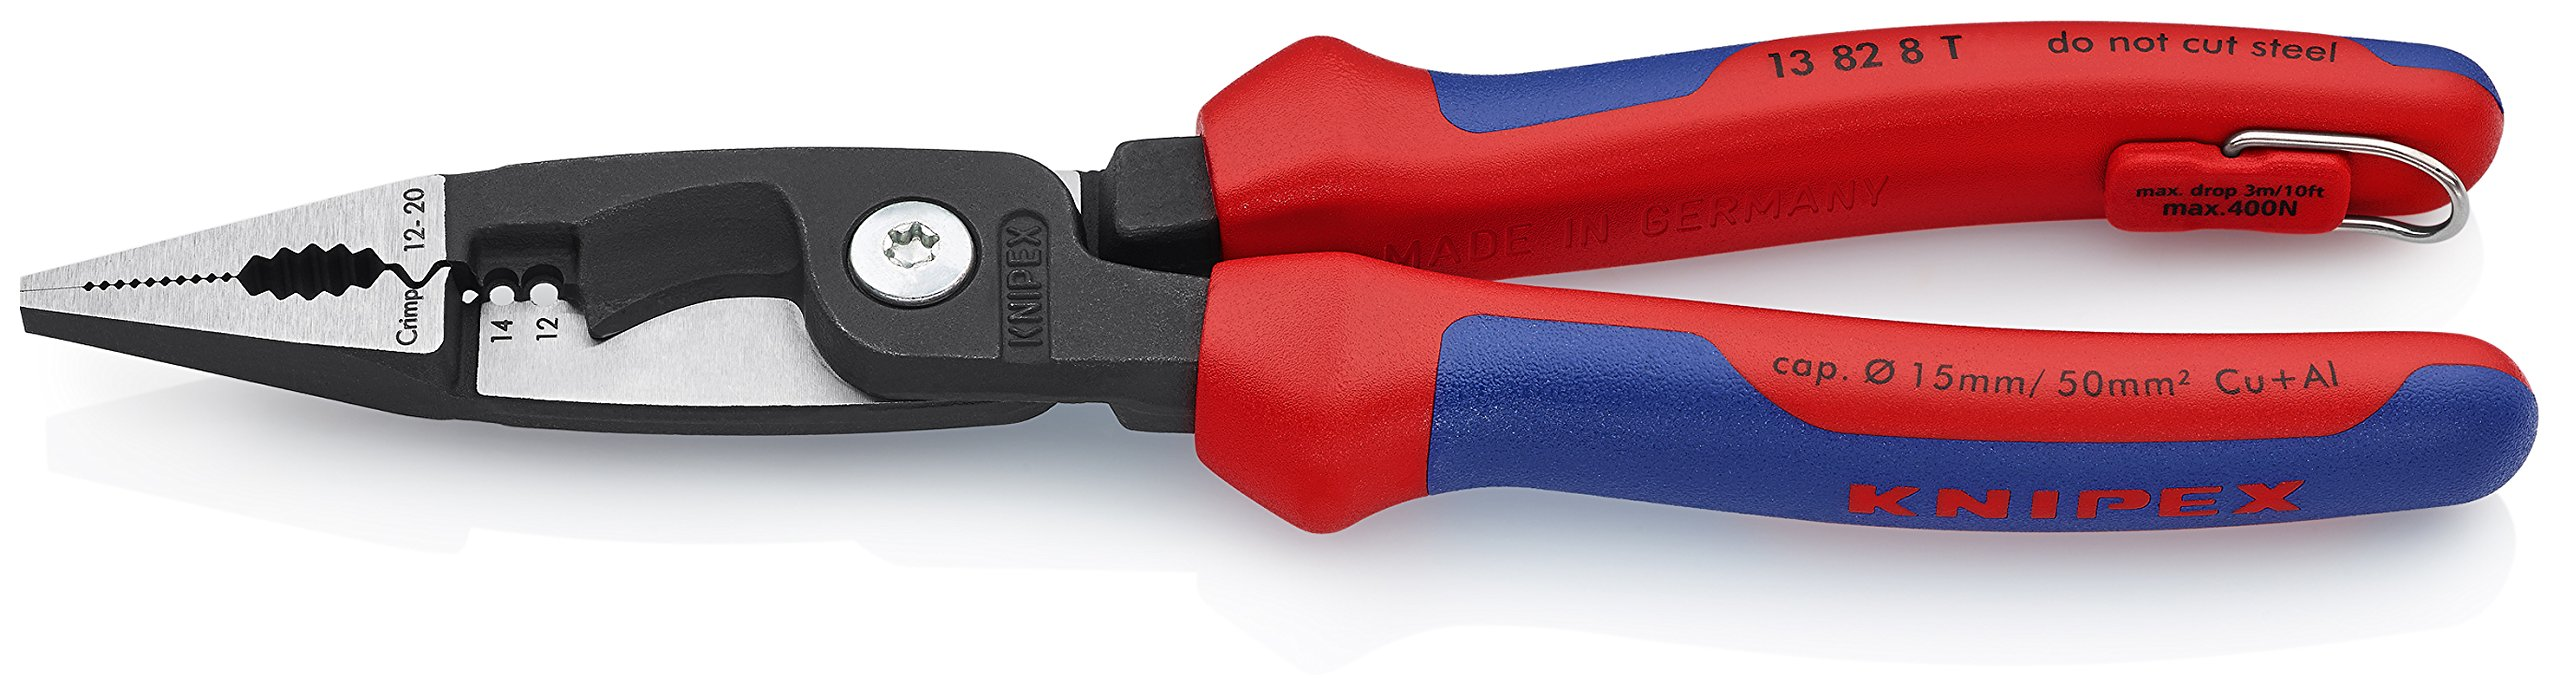 Knipex Tools 13 82 8 T BKA 8'' 6 in 1 Electrical Installation Pliers with Tether Attachment-Comfort Grip by KNIPEX Tools